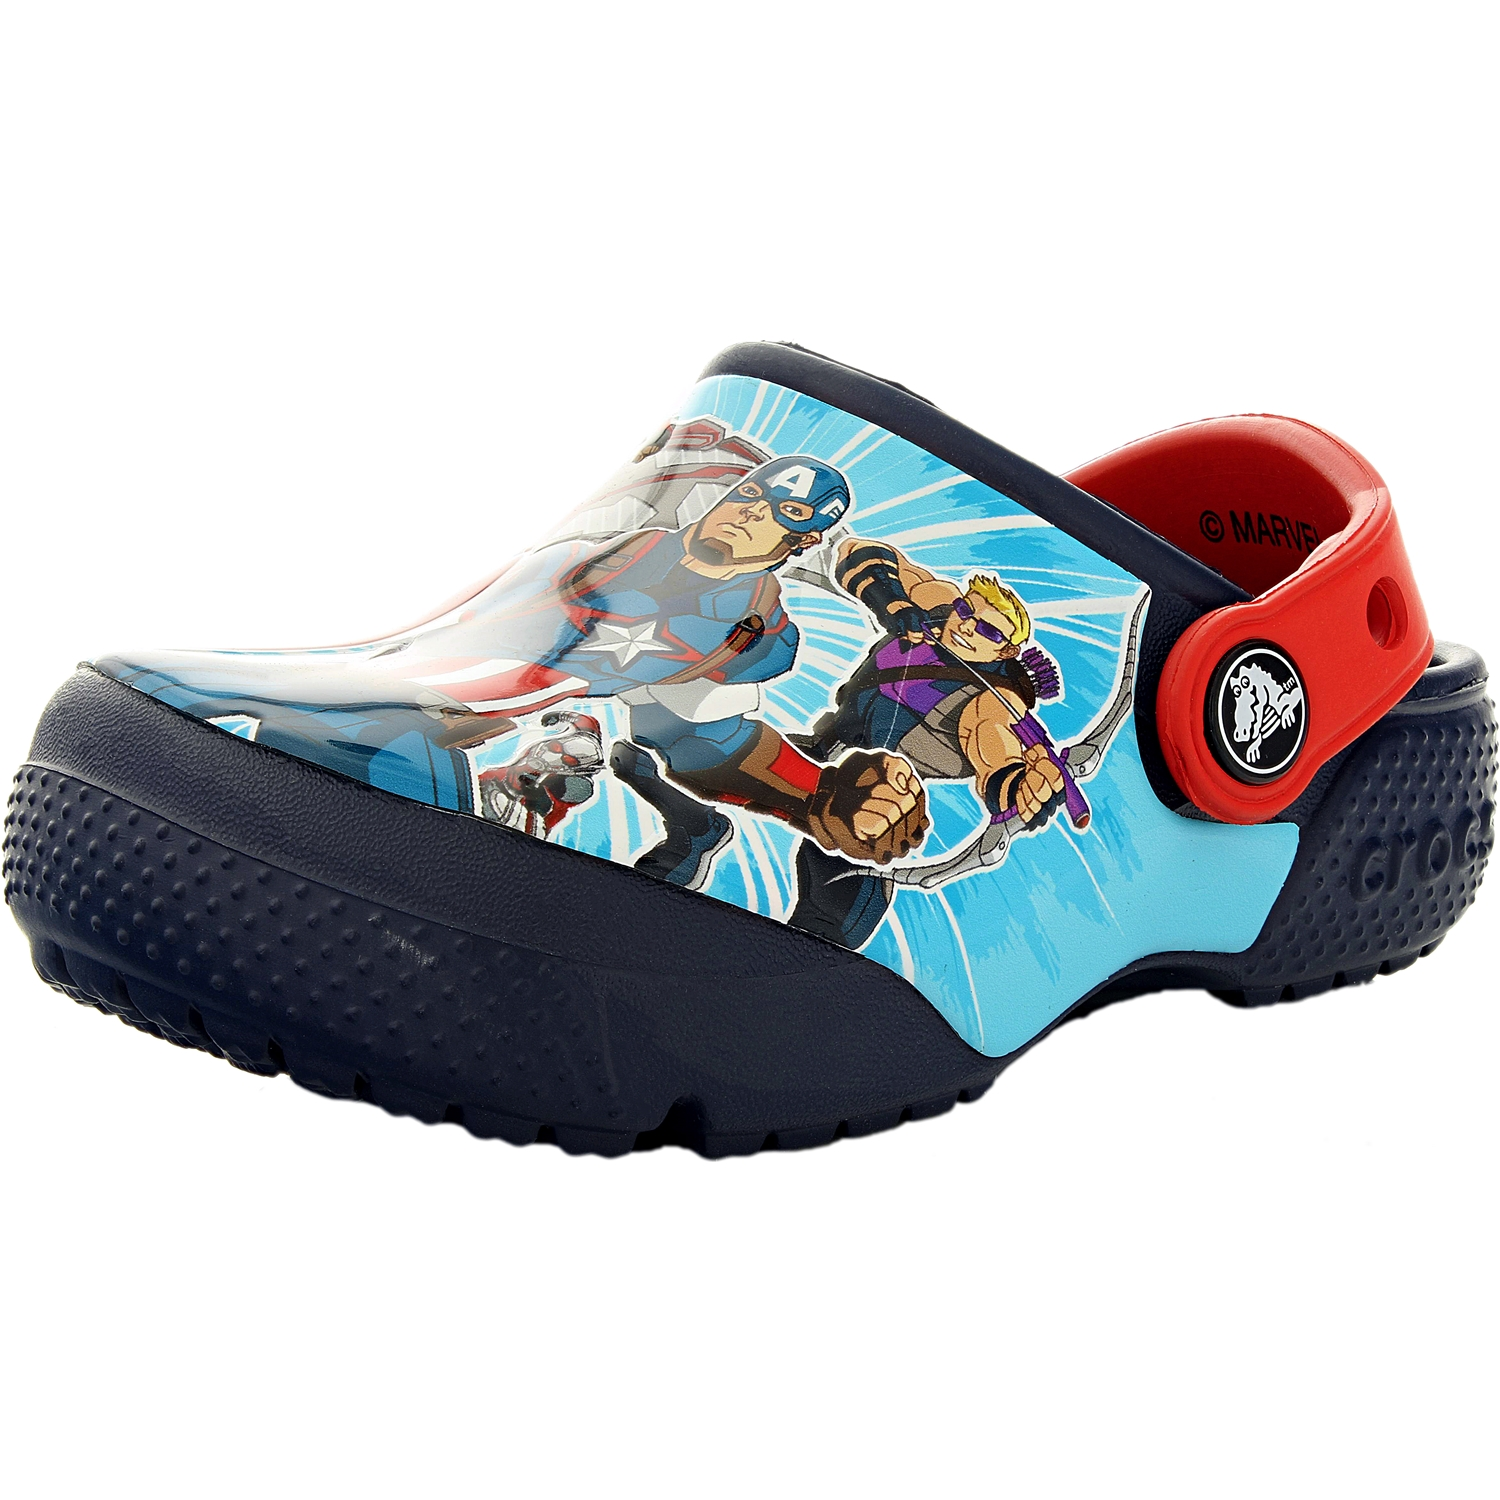 Crocs Boy's Crocsfunlab Marvel Avengers B Ankle-High Flat Shoe by Crocs